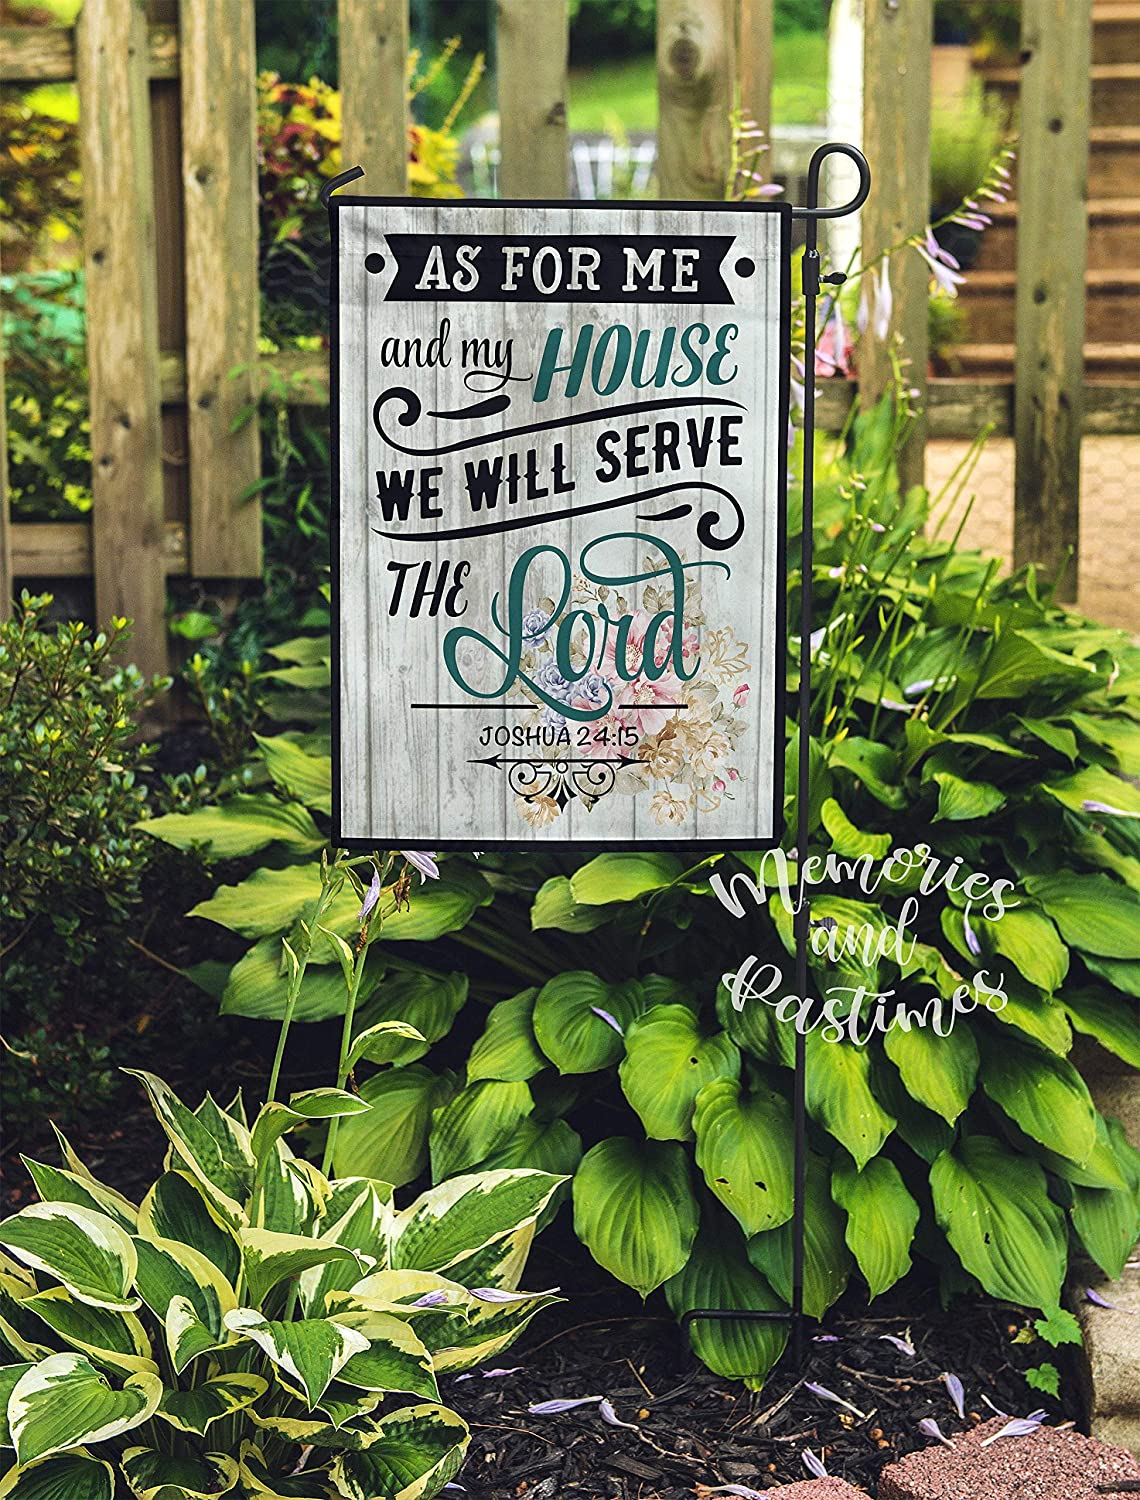 Lplpol Christian Garden Flag Housewarming Gift for Gardener, New Home Gift for Hostess, Garden Decor, As for Me and My House We Will Serve The Lord 12x18 inches